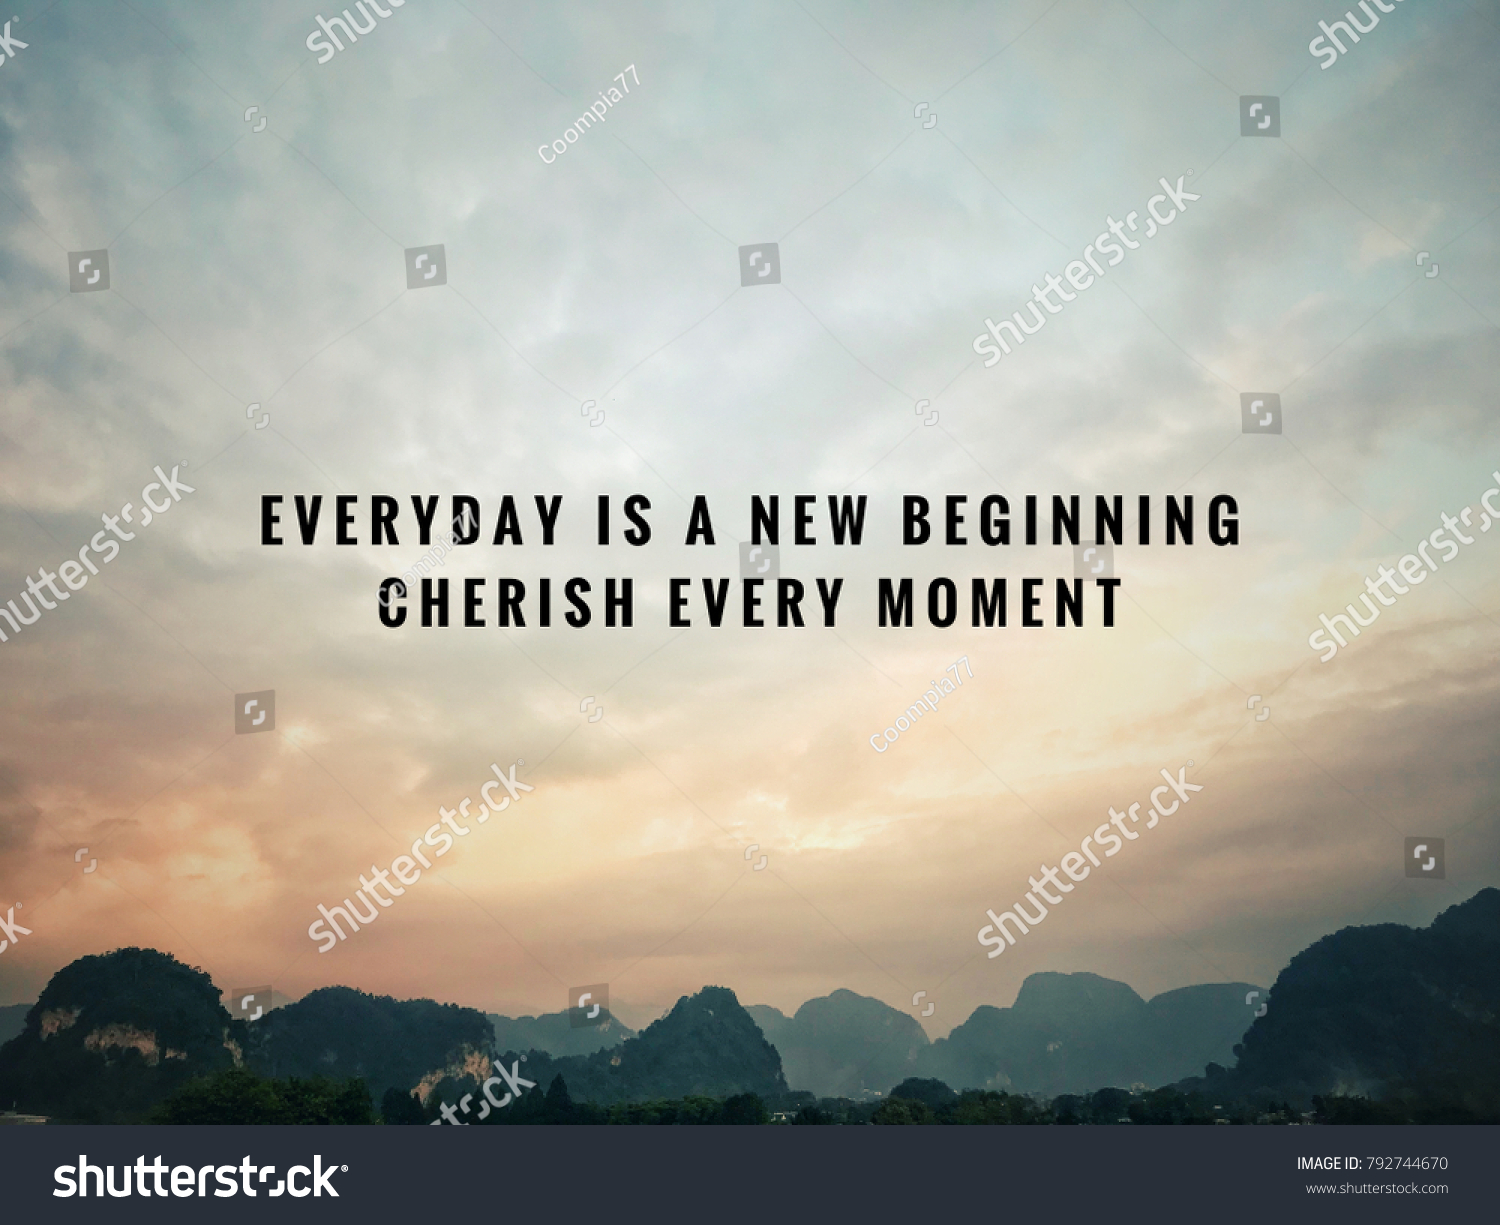 Inspirational Quotes About New Beginnings Motivational Inspirational Quotes Everyday New Beginning Stock  Inspirational Quotes About New Beginnings